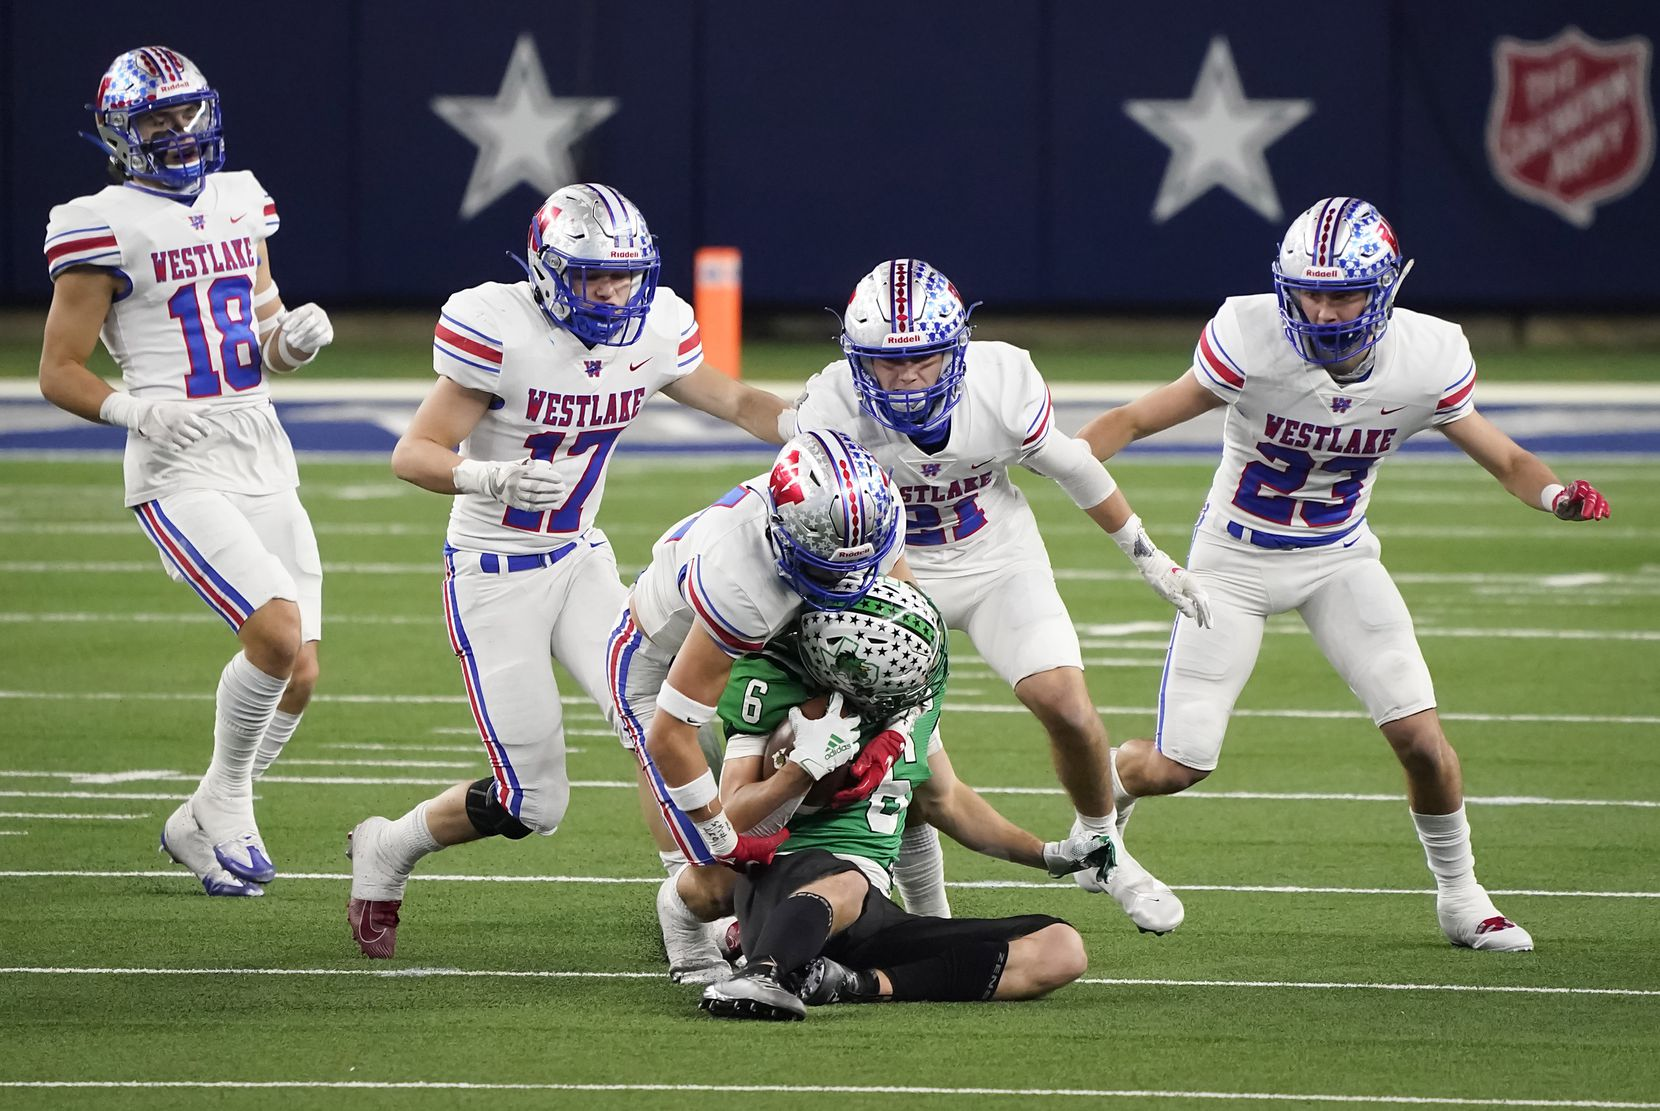 Southlake Carroll wide receiver Landon Samson (6) is brought down by Austin Westlake defensive back Michael Taaffe (14) as defensive back Ford Dickerson (18), linebacker Brady Lamme (17), defensive back Carter Barksdale (21) and defensive back Beau Breathard (23) close in on the play during the second quarter of the Class 6A Division I state football championship game at AT&T Stadium on Saturday, Jan. 16, 2021, in Arlington, Texas.